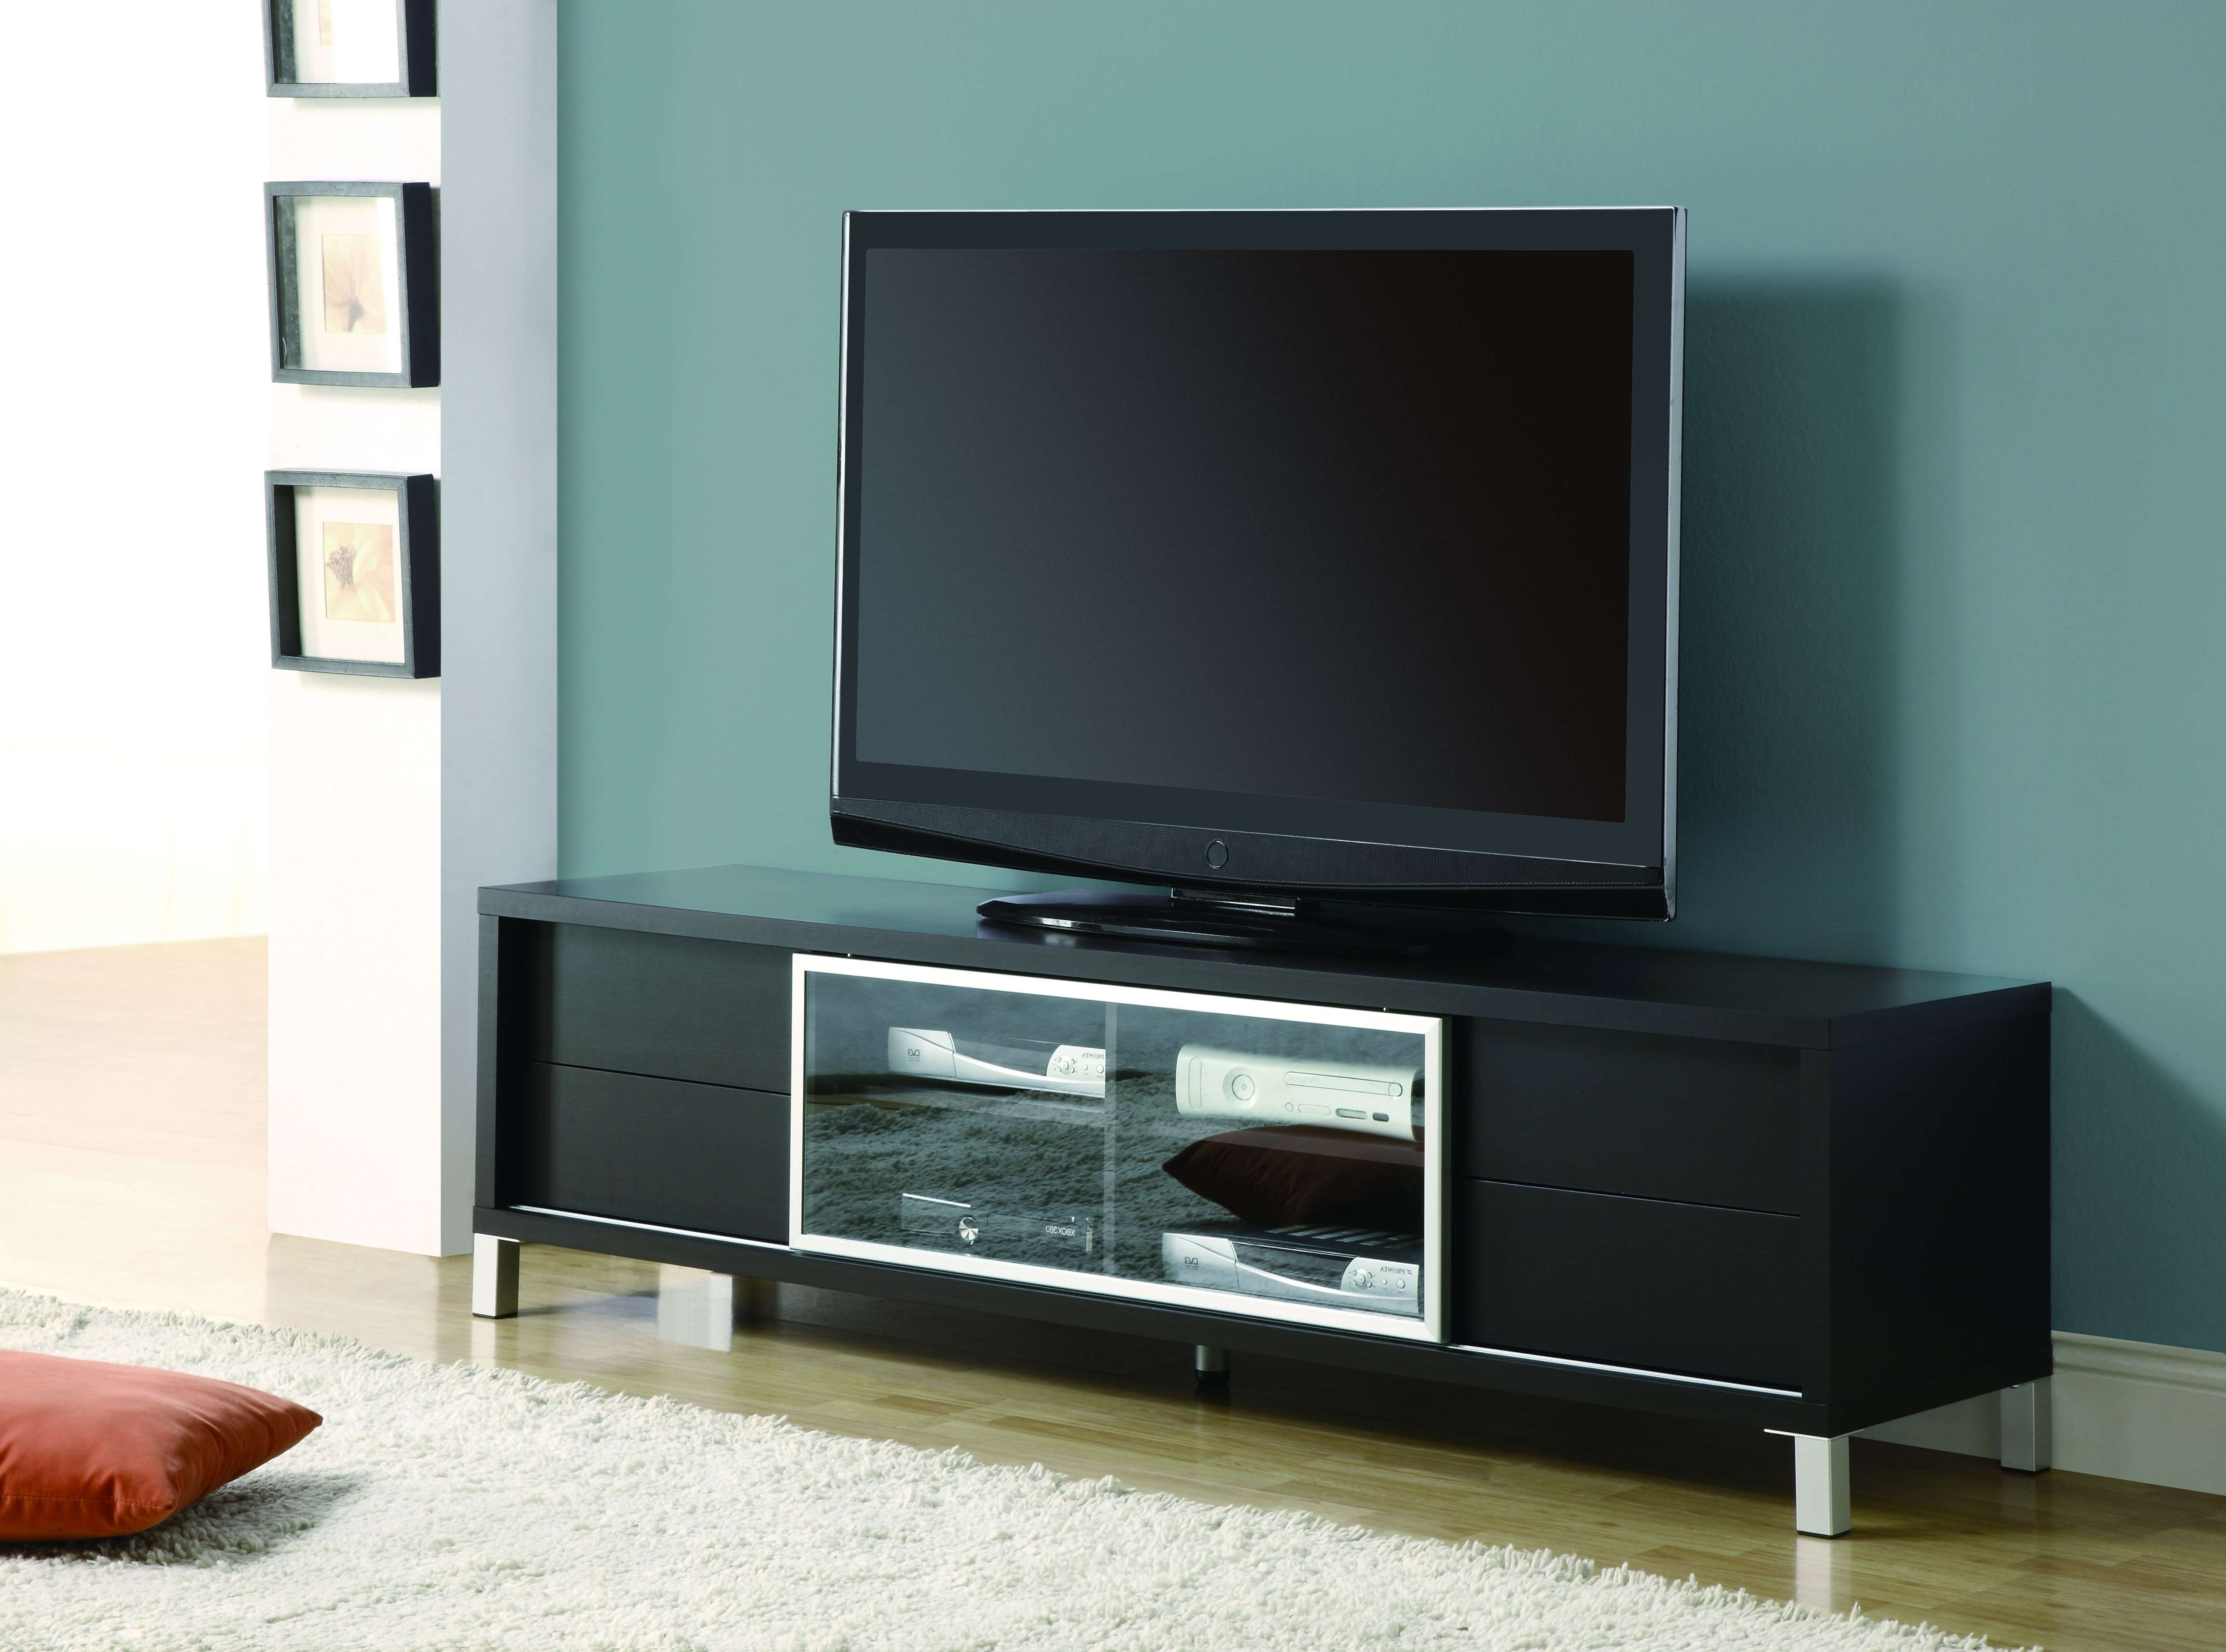 Furniture : Fancy Tv Stand Under 50 Big Lots Tv Stands Television With Contemporary Tv Stands For Flat Screens (View 7 of 20)